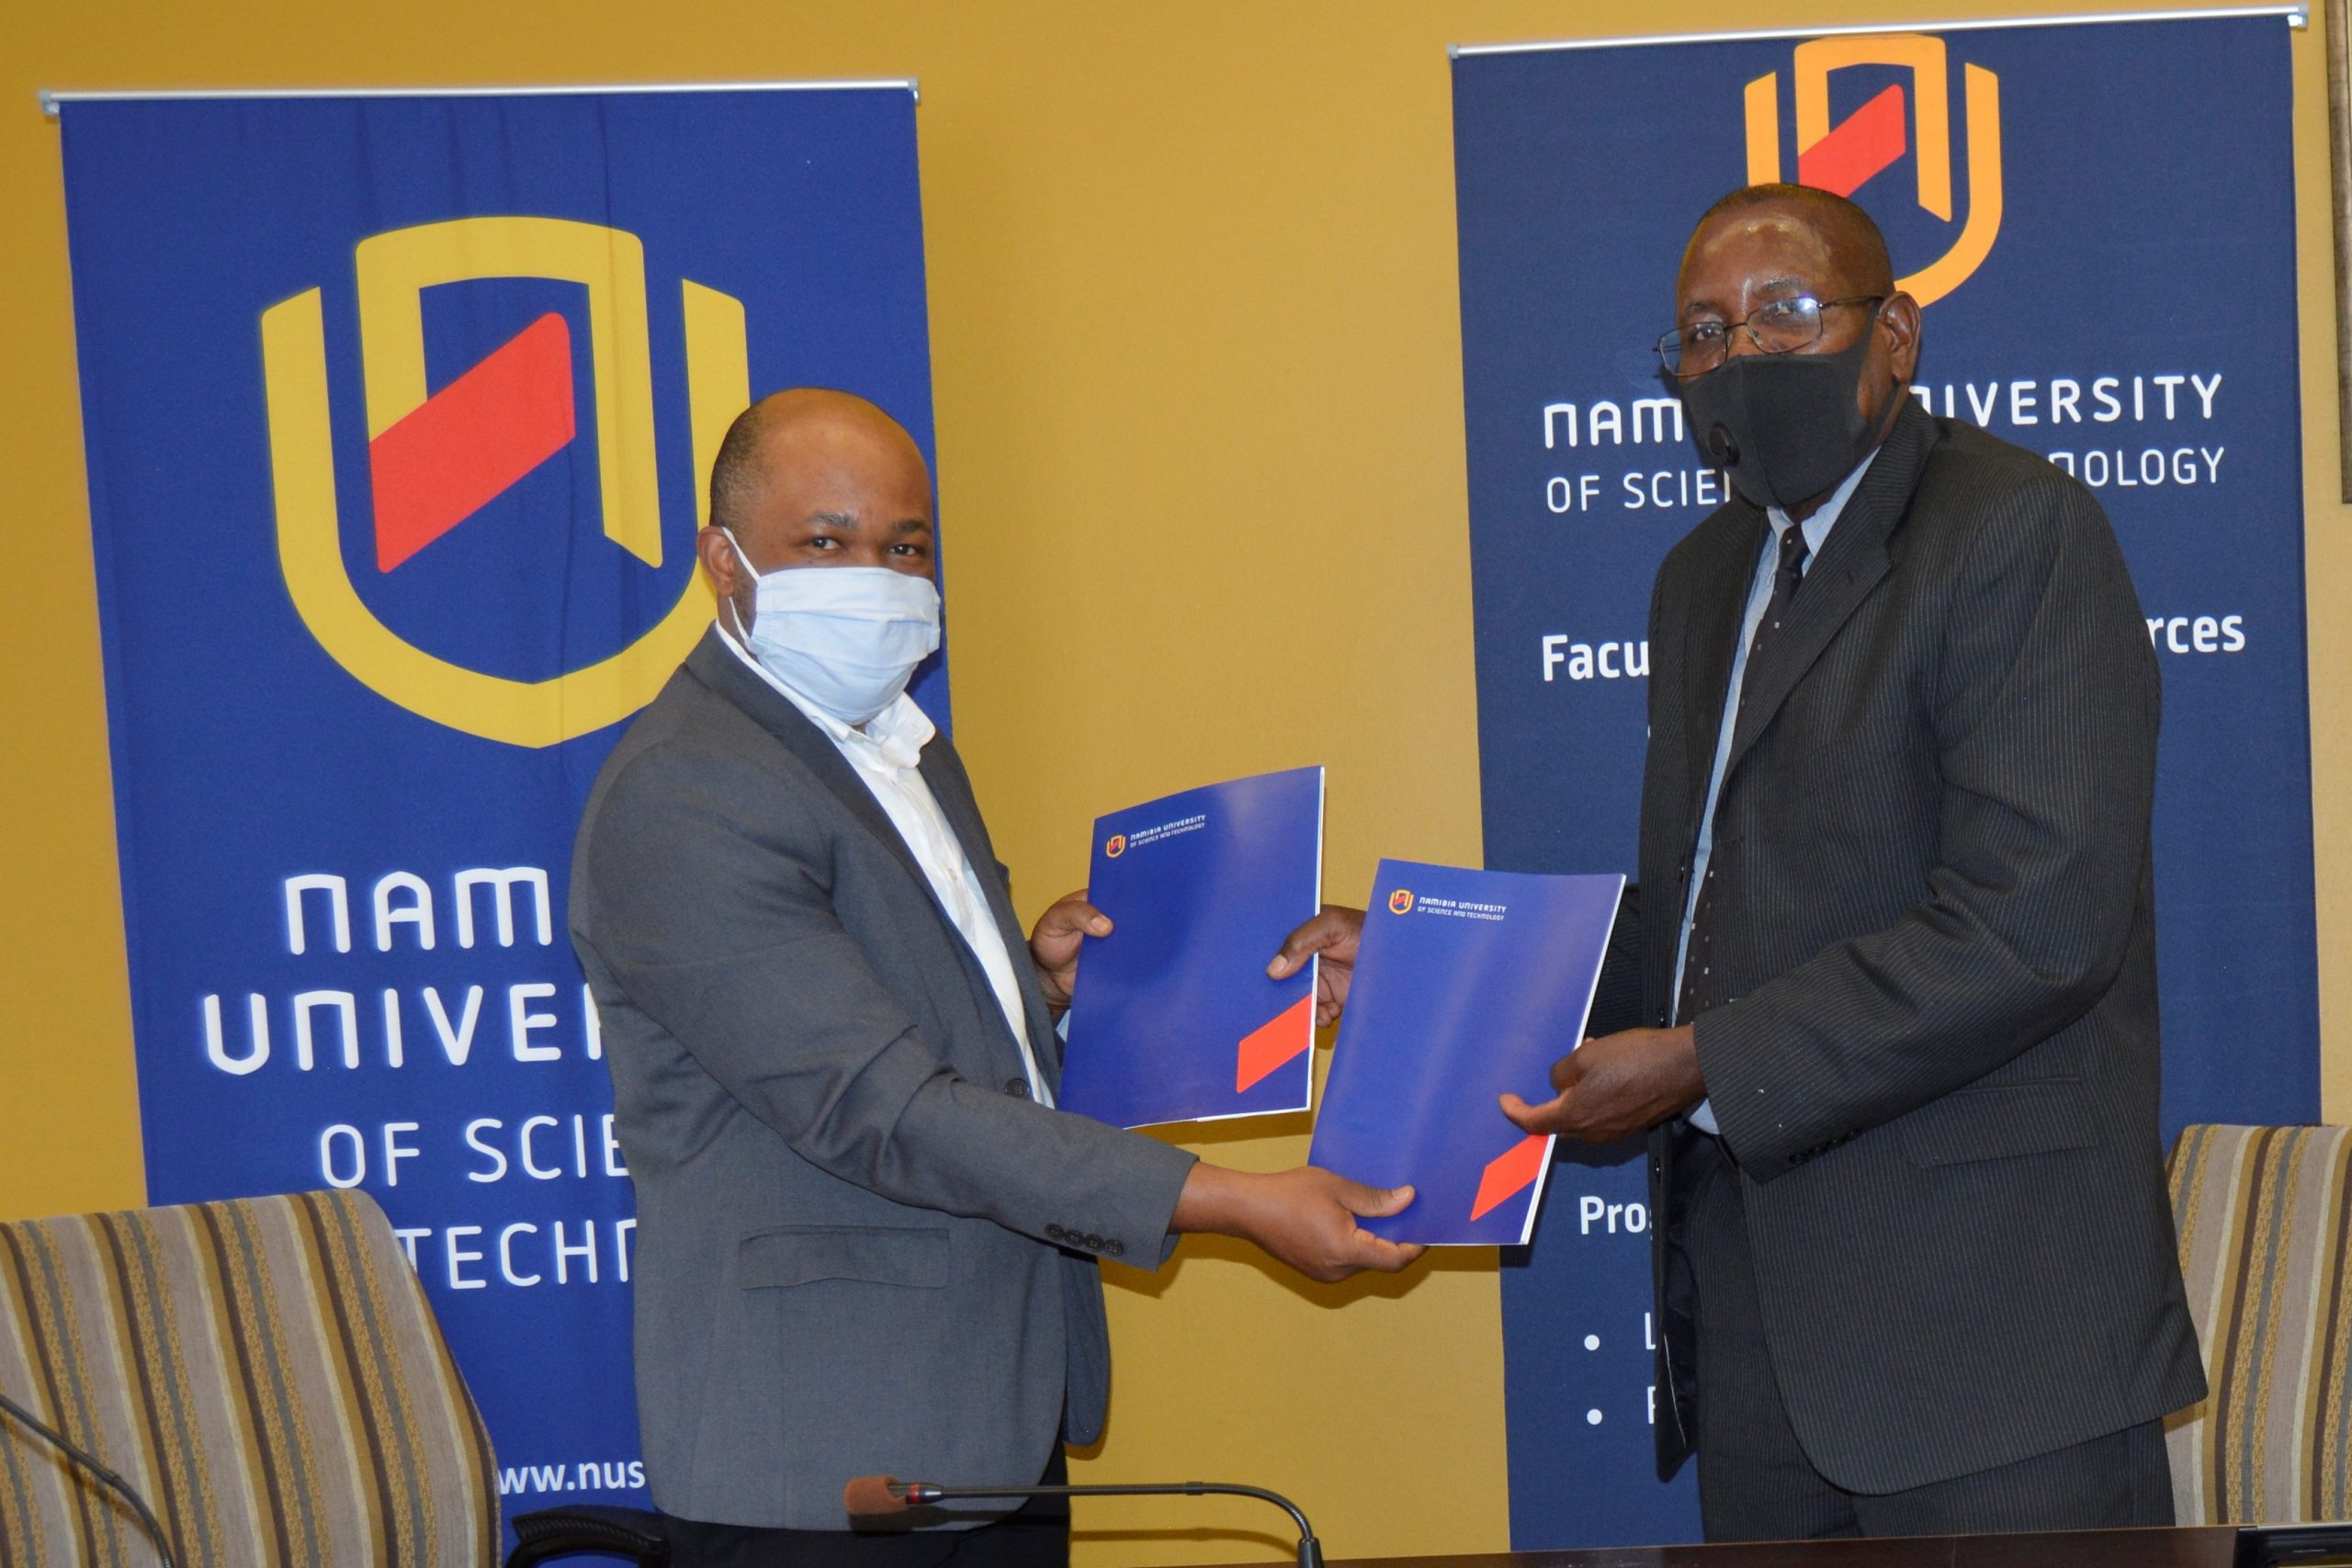 Prof Uchendu Chigbu (left) receives the signed GLTN Partners' Charter from the Acting Vice Chancellor, Namibia University of Science and Technology (NUST)